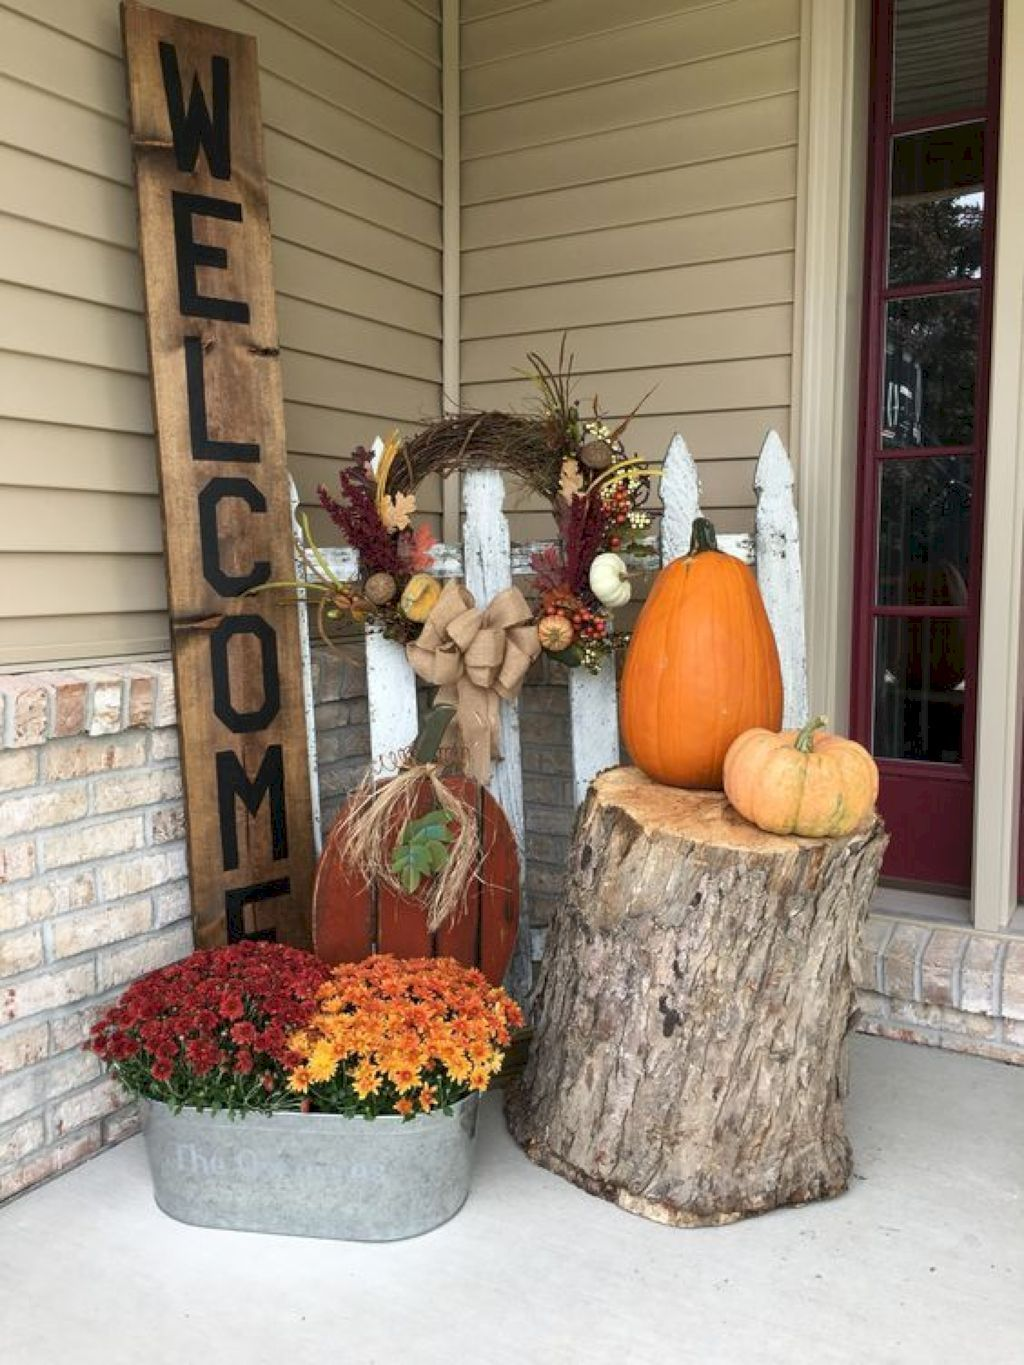 30 Simple Fall Porch Decorating Ideas #falldecorideasfortheporch